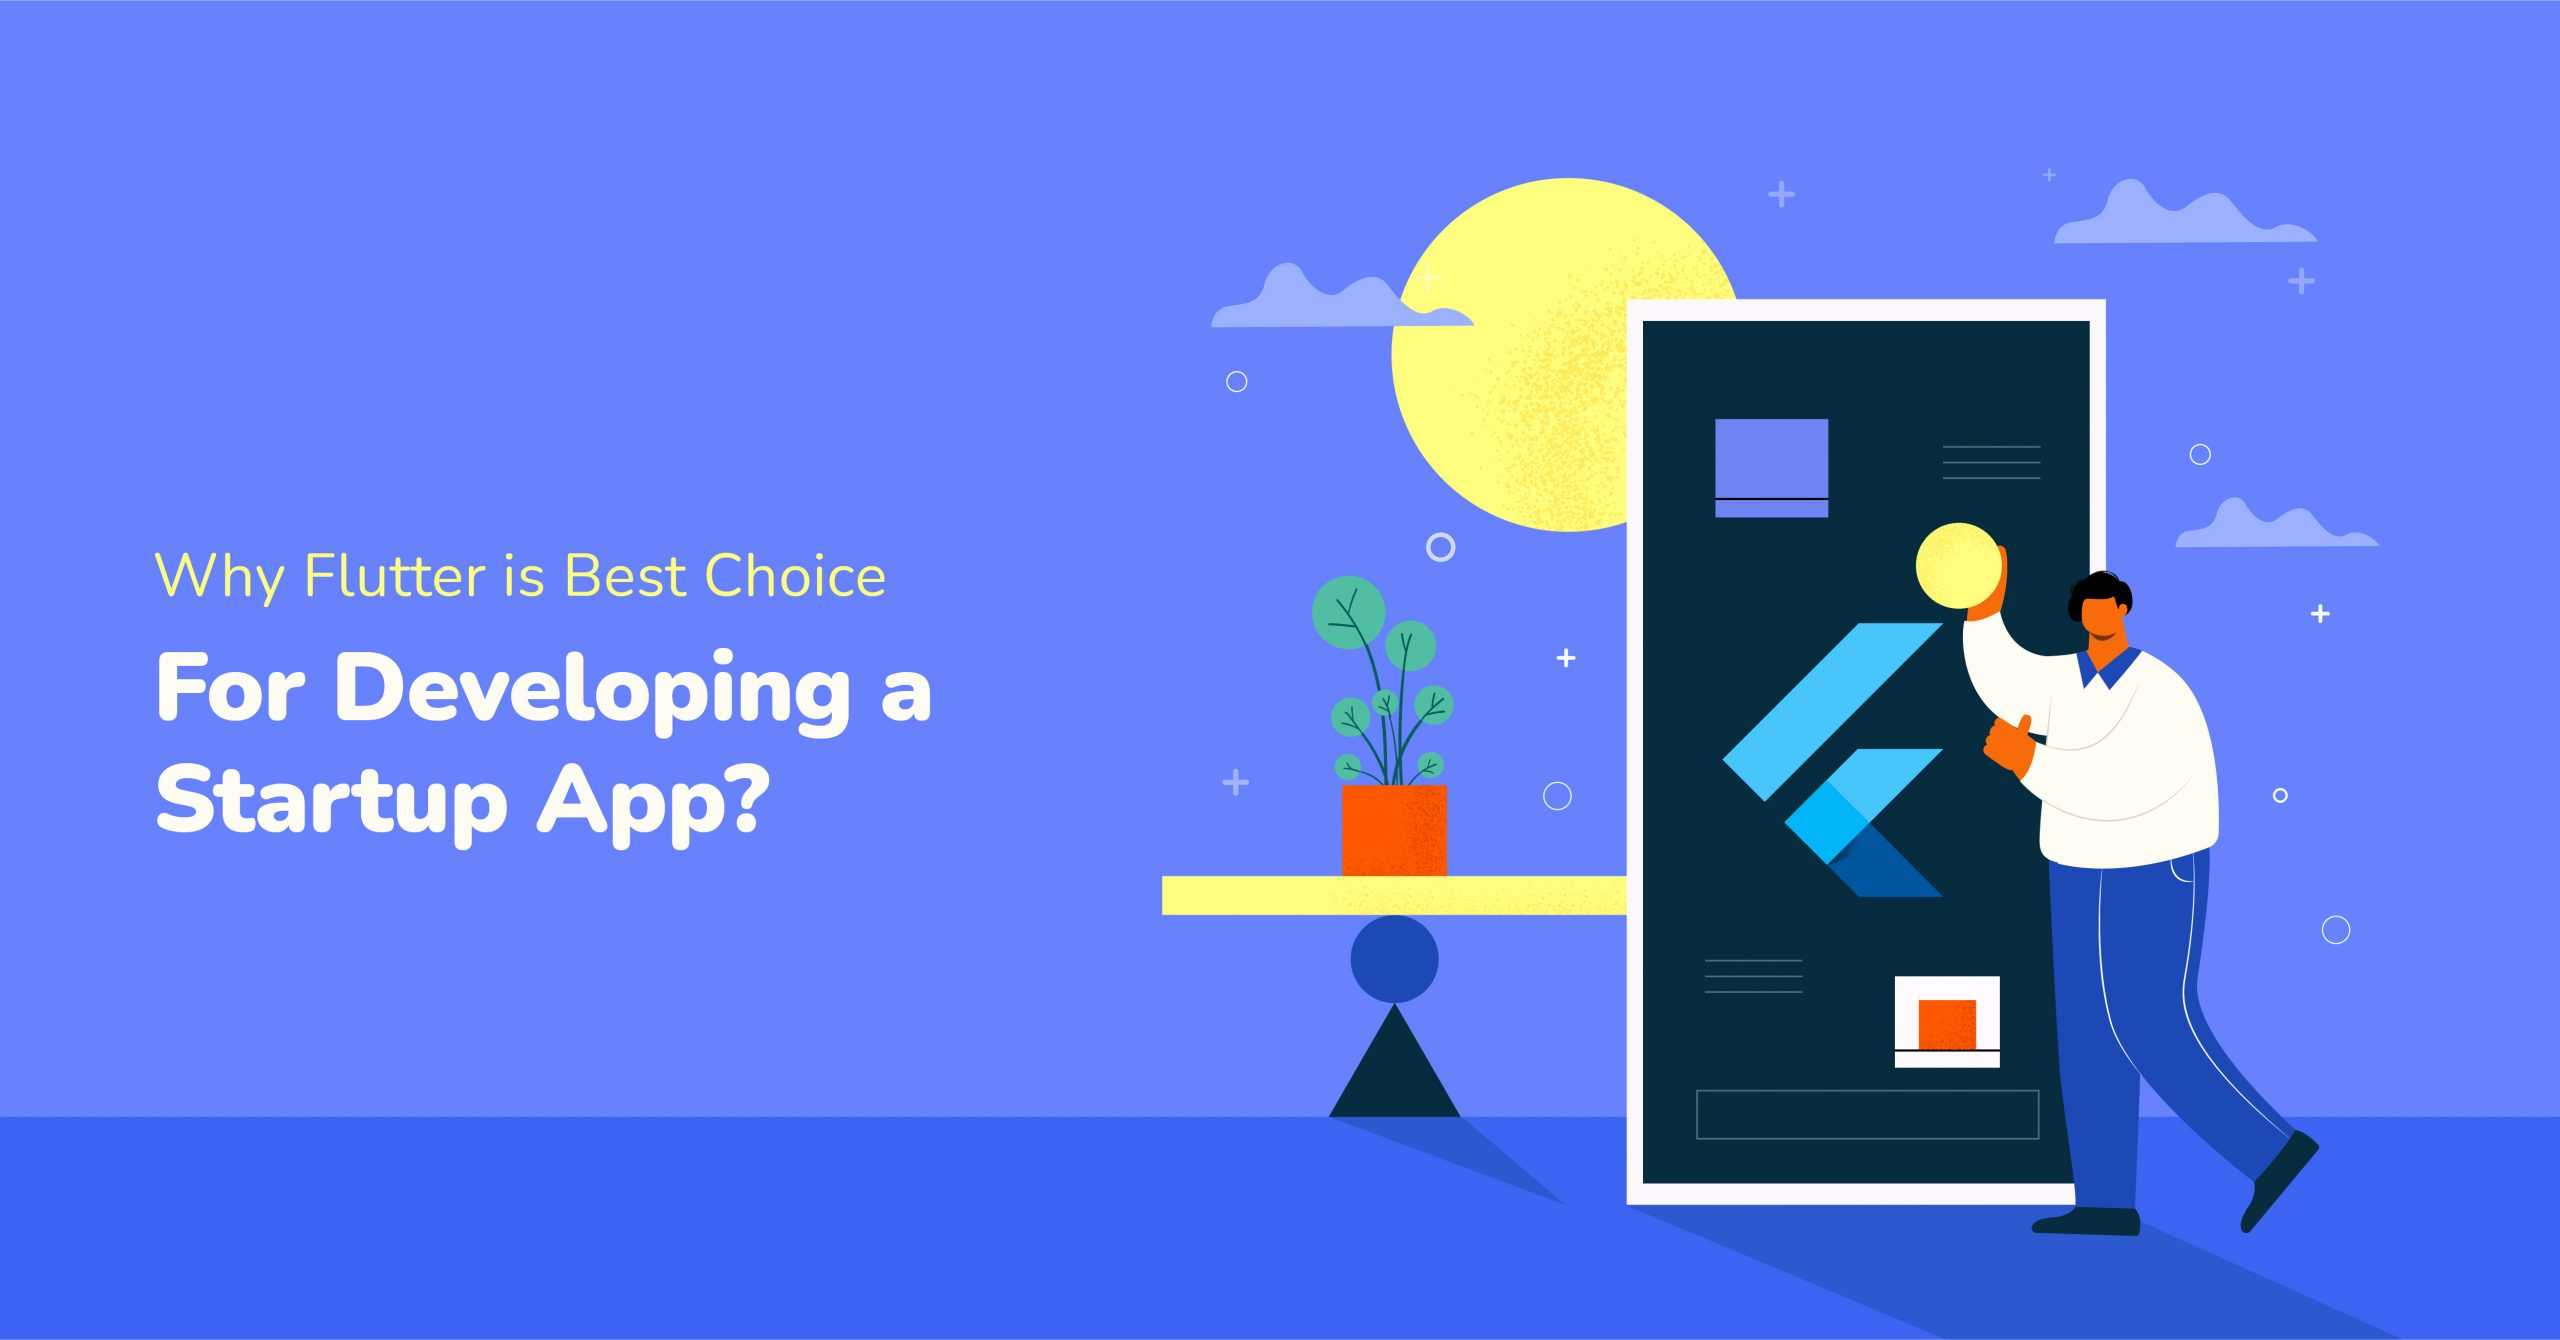 Why Flutter is Best Choice for Developing a Startup App